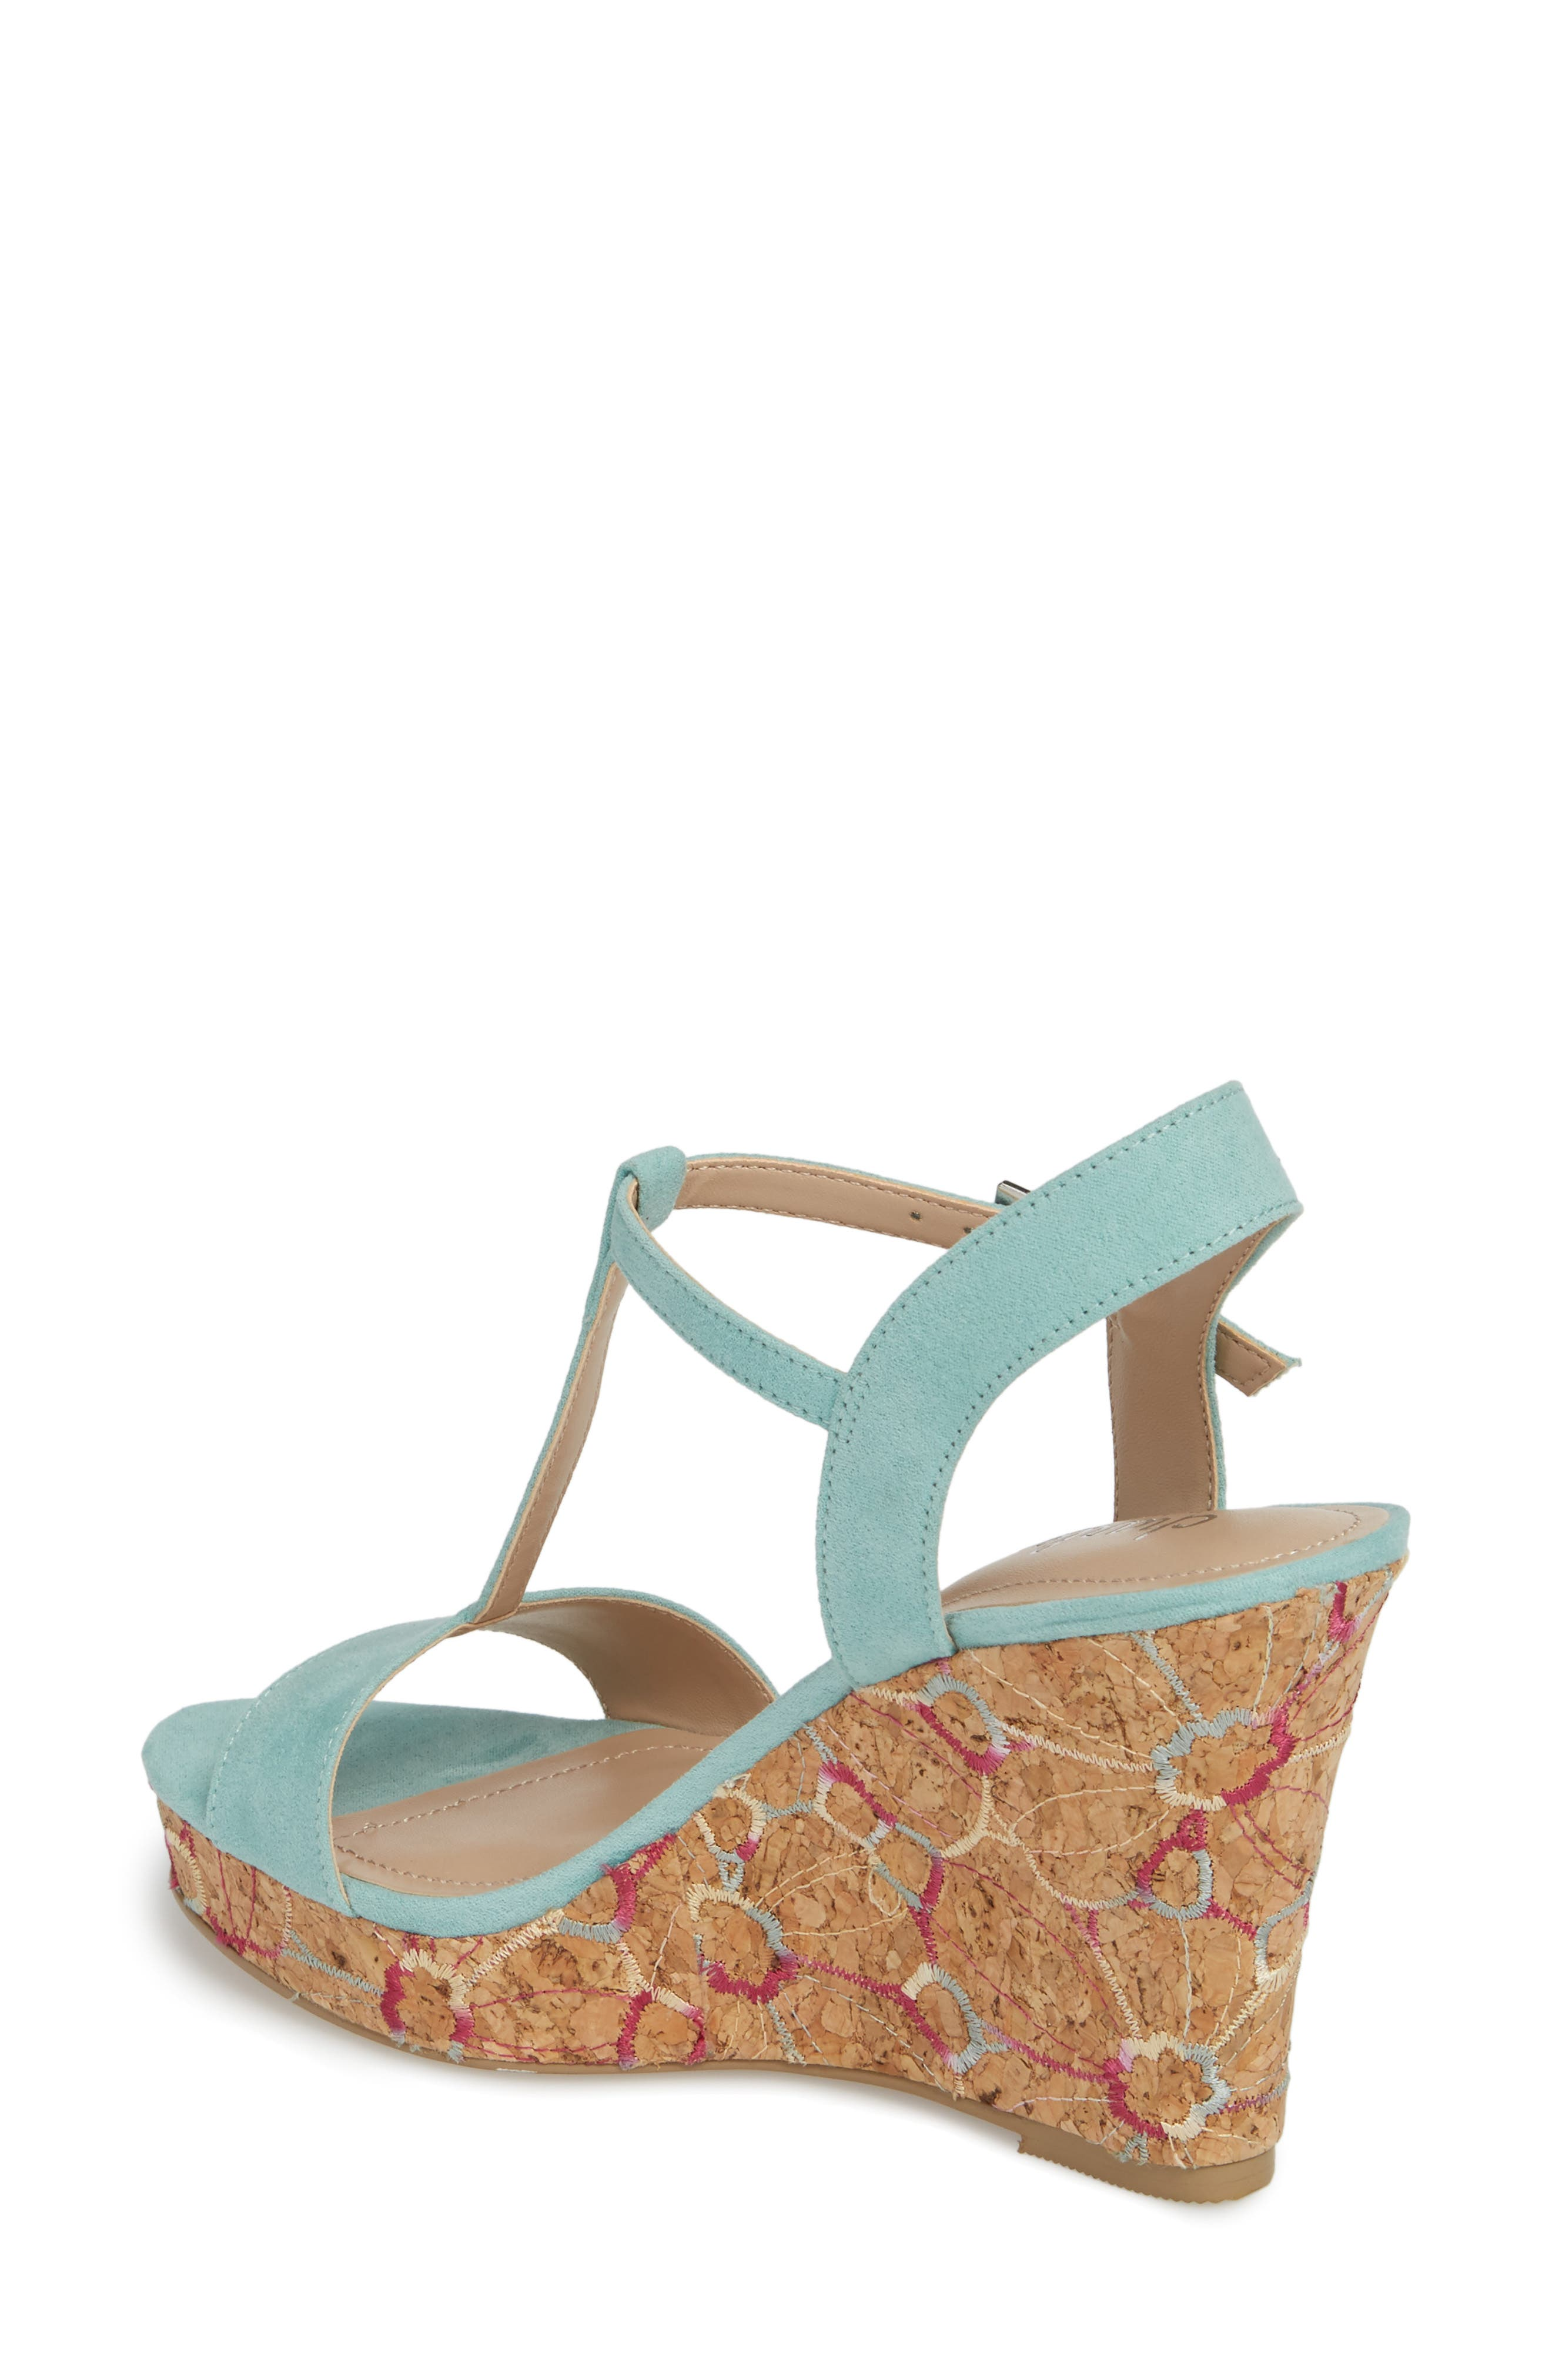 Laney Embroidered Wedge Sandal,                             Alternate thumbnail 2, color,                             Mint Green Suede